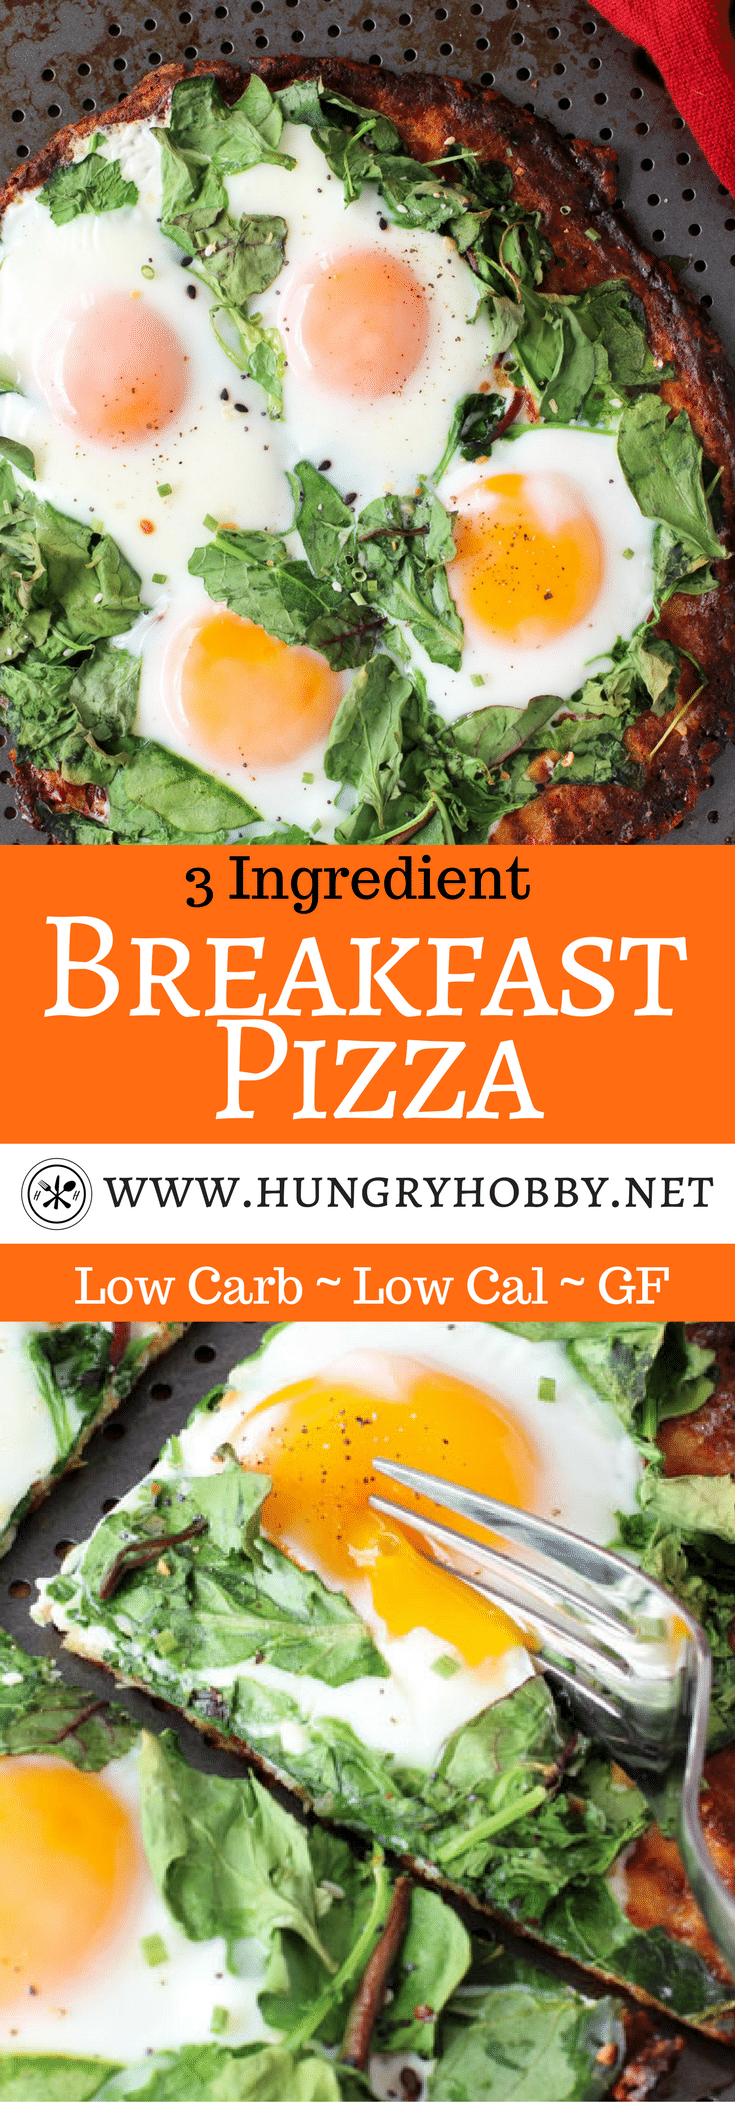 3 Ingredient Healthy Breakfast Pizza Recipe is a delicious way to start your day or unbelievable breakfast for dinner! #lowcarb & #glutenfree friendly! @califlourfoods #hungryhobby #CutTheCarbs #lowcarbpizza #ketopizza #cauliflowerpizza #vegetarian